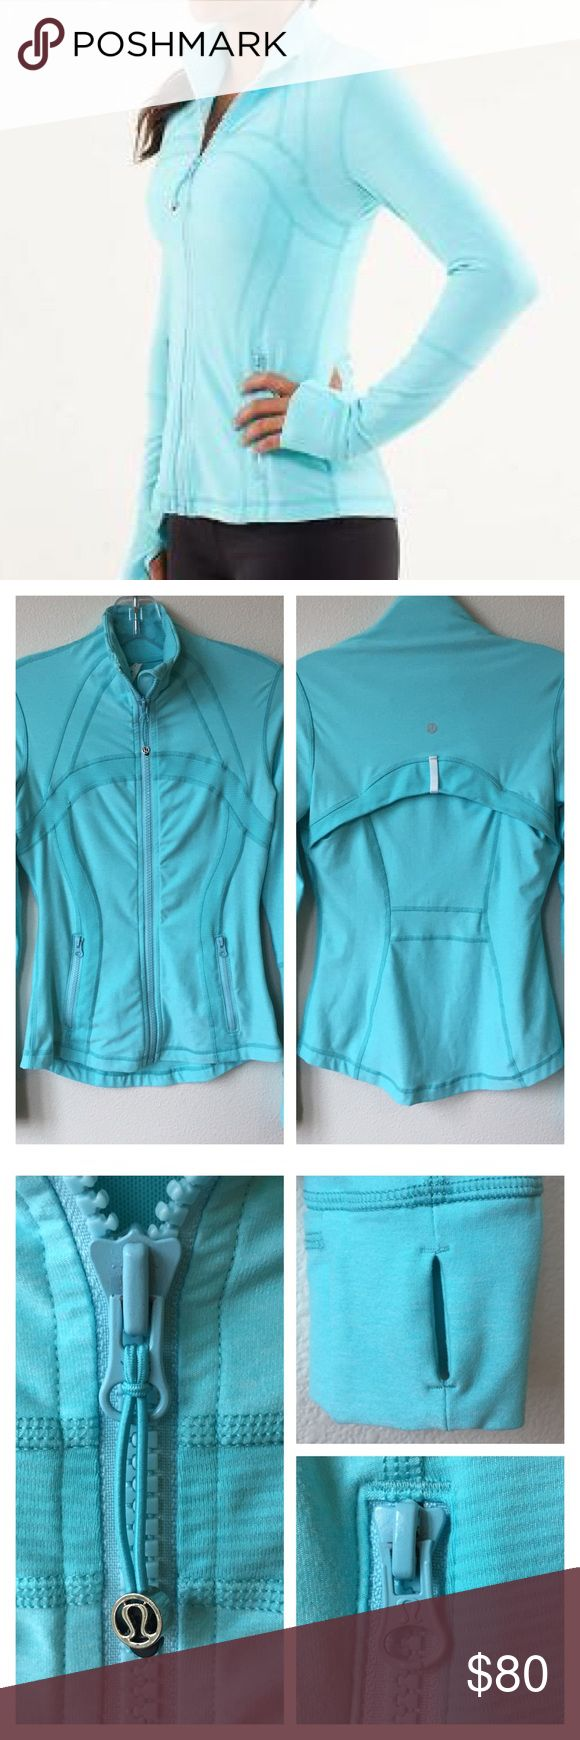 "Lululemon 'Define' Jacket Turquoise Size 4 Zip-Up Lululemon. 'Define' Jacket. Size 4. Retail: $118. Turquoise color (1st pic best shows color). ""We designed this fitted jacket with sweat-wicking fabric and built-in ventilation to take you to and from the studio. Added thumbholes and fold-over Cuffins™ finger covers help to keep the cold out."" Slim fit. Hip length. Upper back ventilation. Two pockets. Made out of sweat-wicking, four way stretch Luon, cottony soft. Added Lycra fabric for great…"